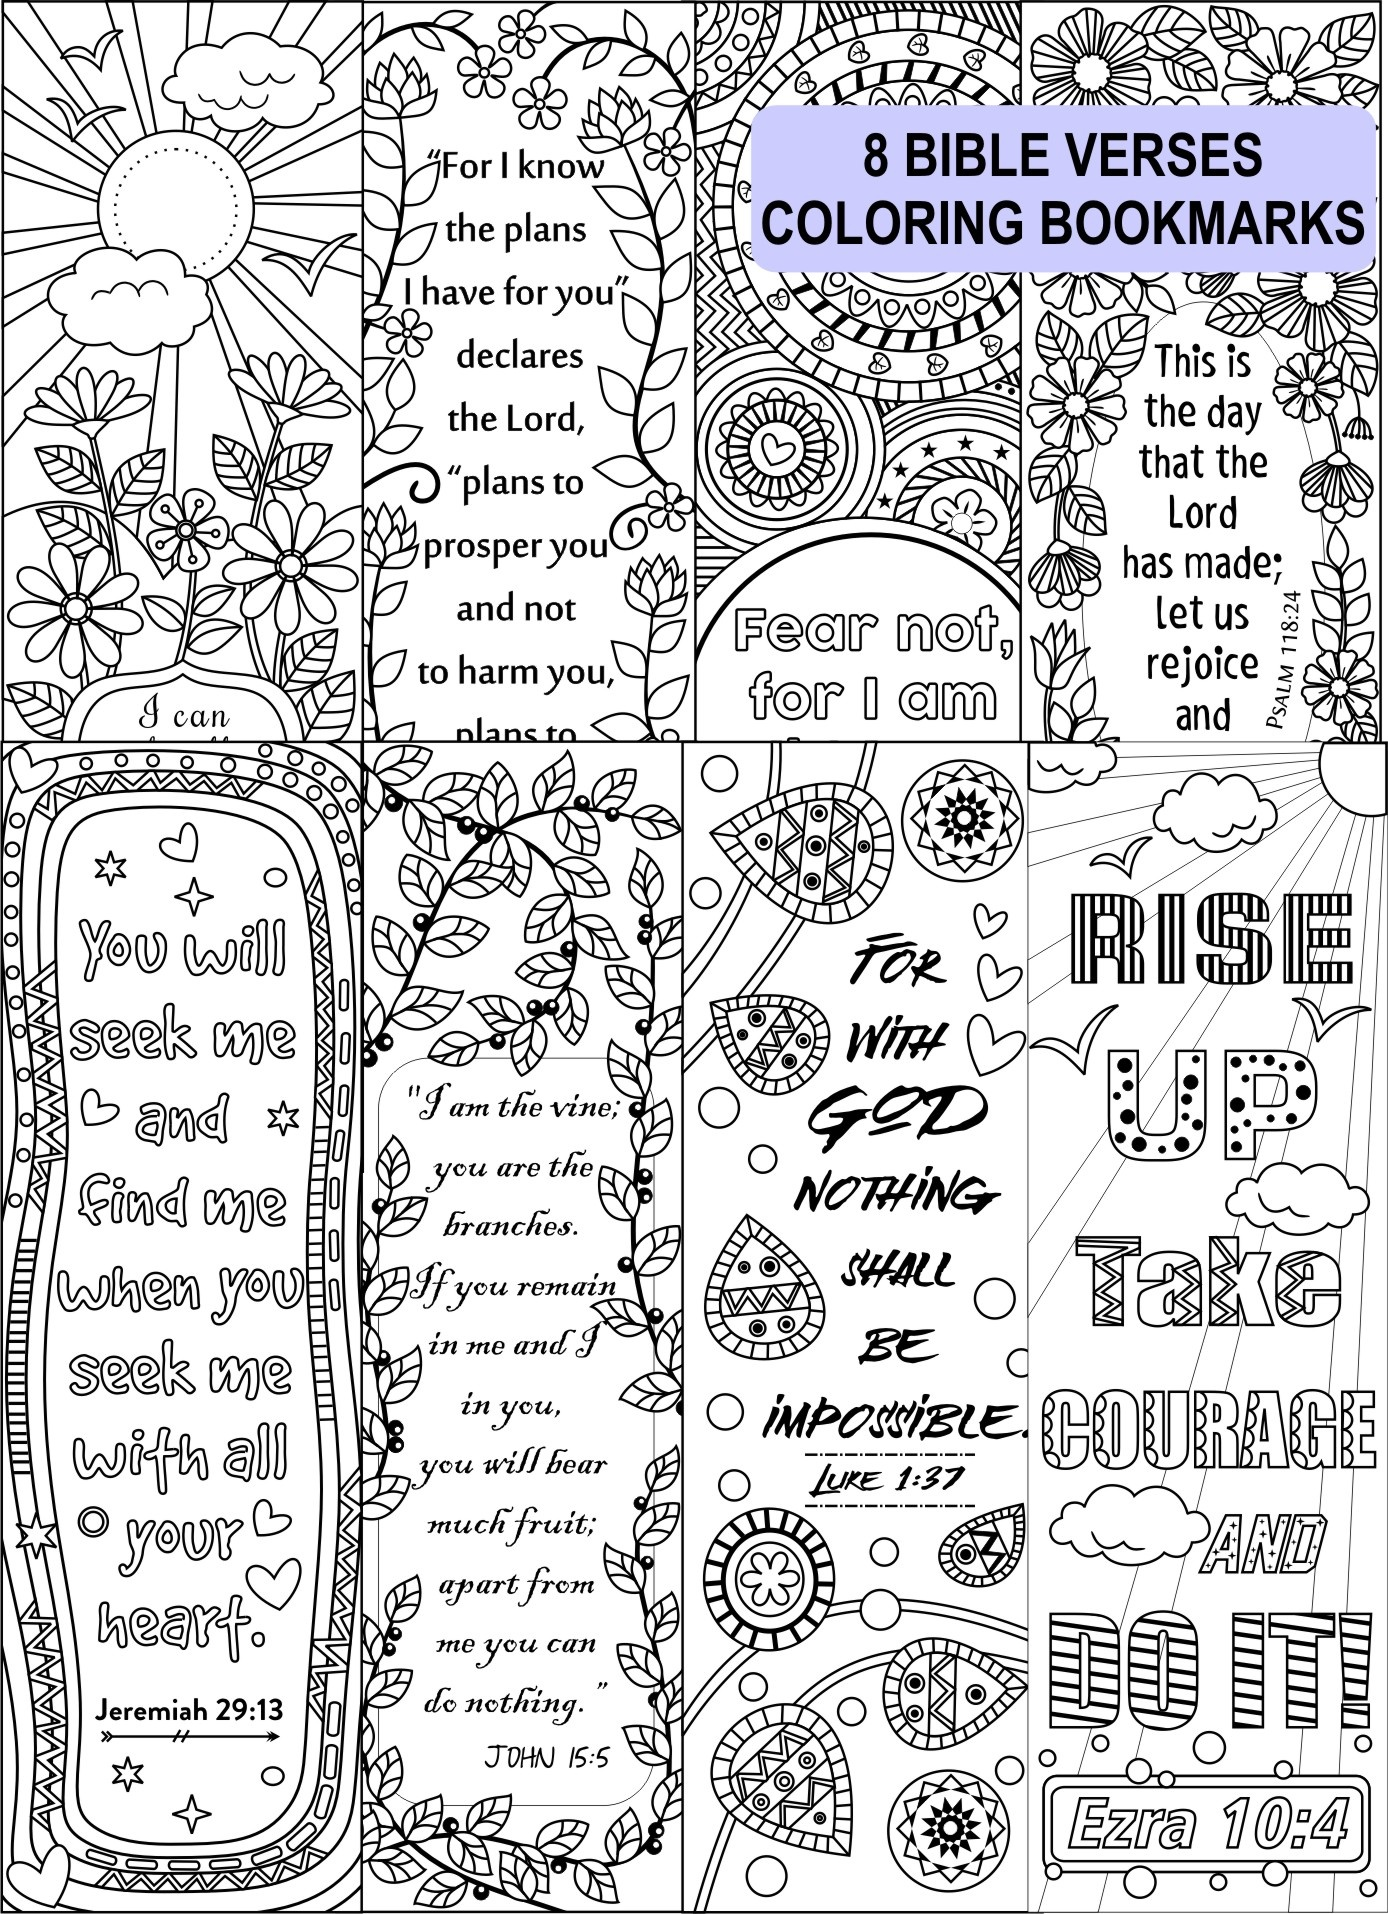 graphic about Printable Coloring Bookmarks referred to as 8 Bible Verse Coloring Bookmarks